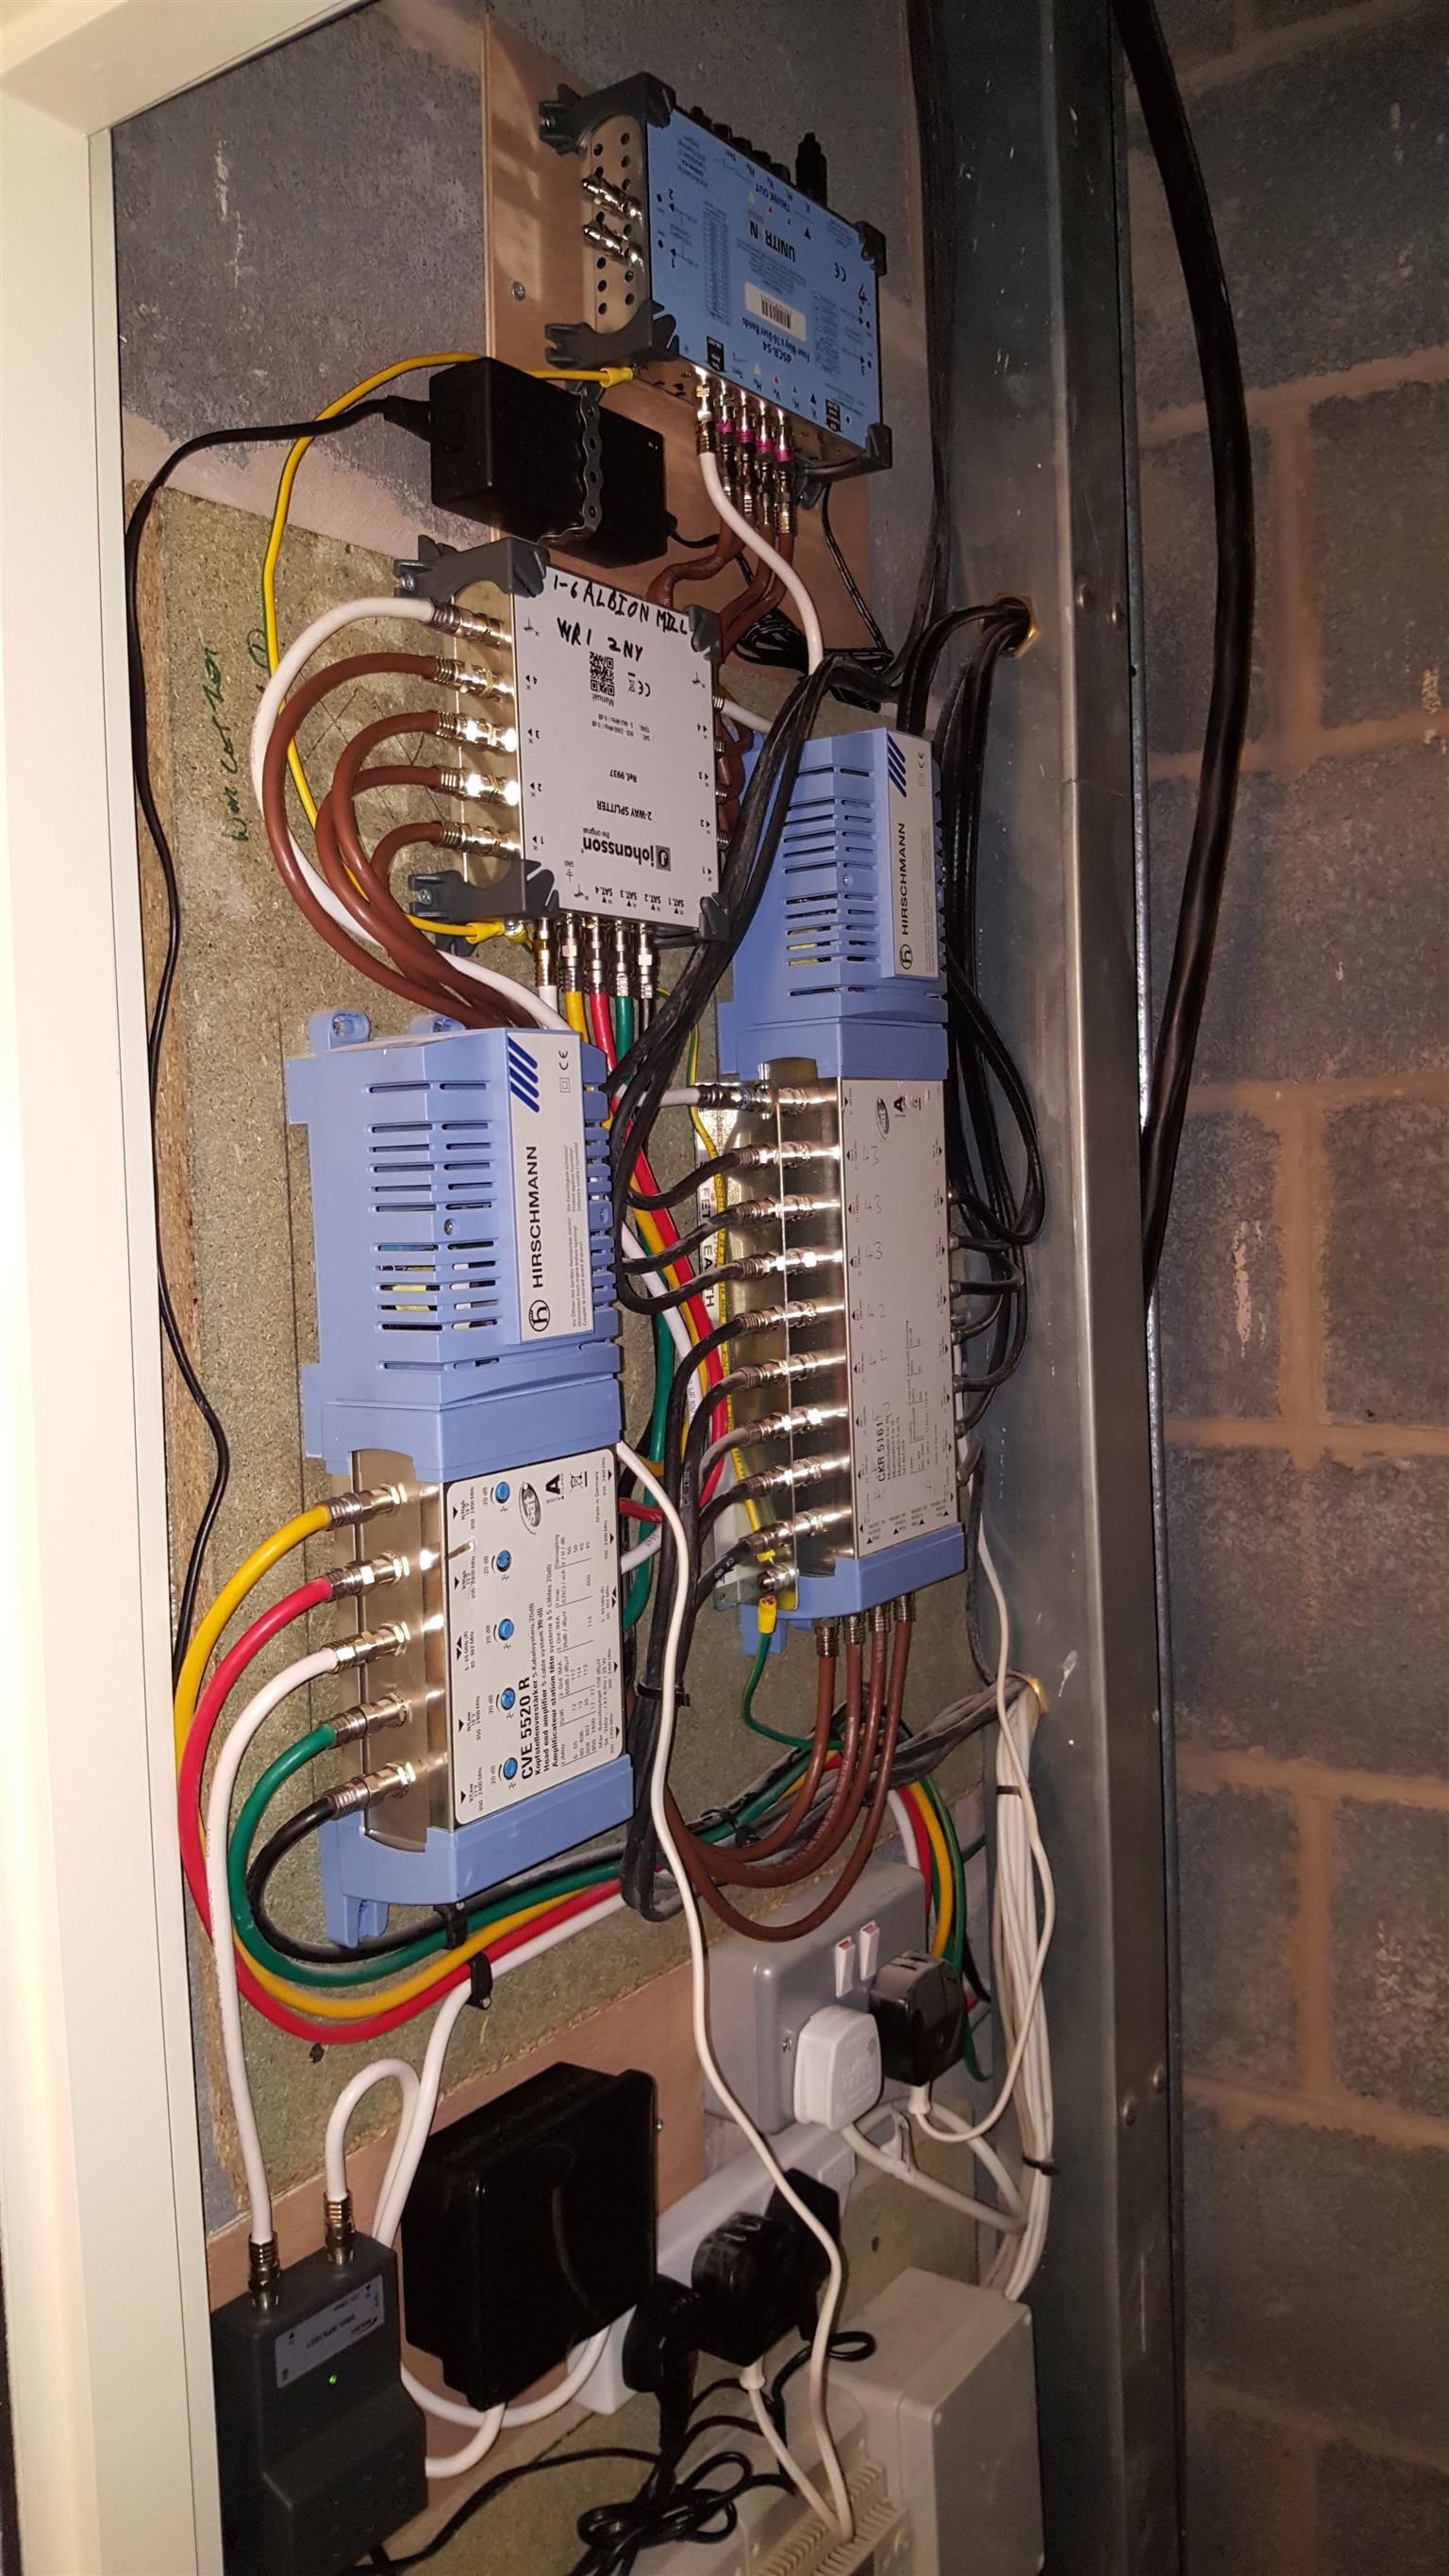 Level 4 DStv accredited services done by the owner.